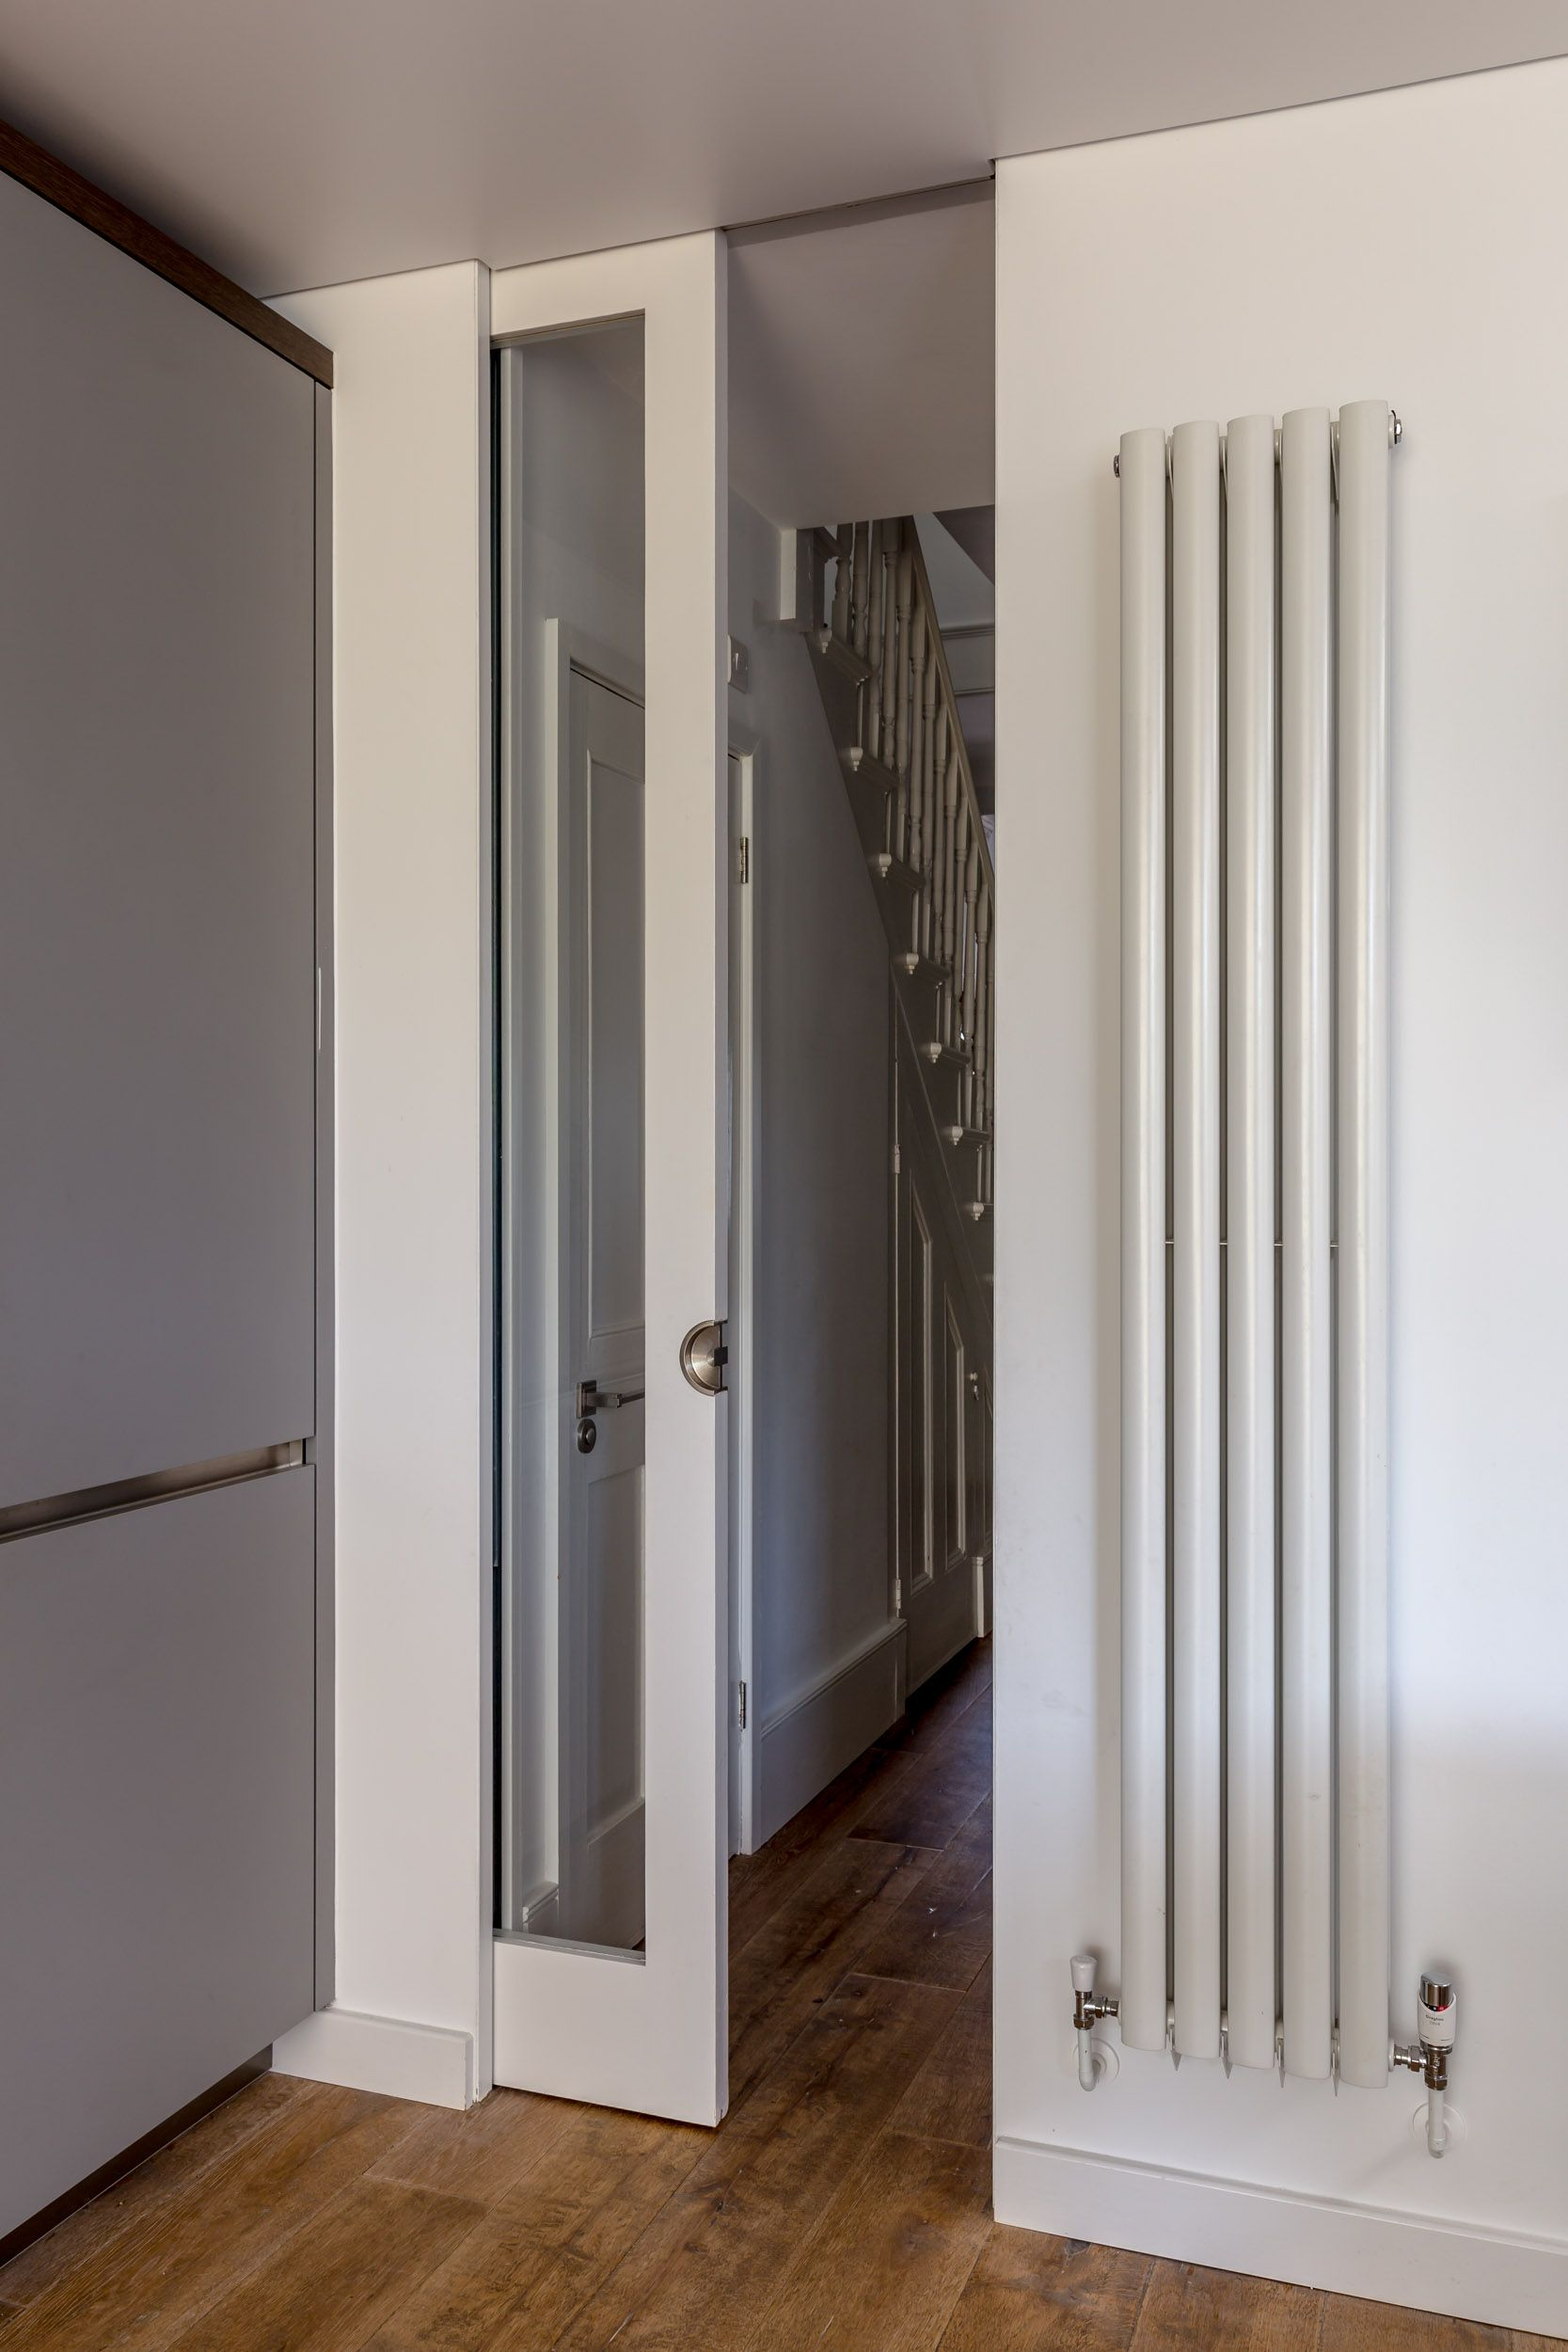 Floor To Ceiling Glass Sliding Pocket Door Modern Tall Radiator